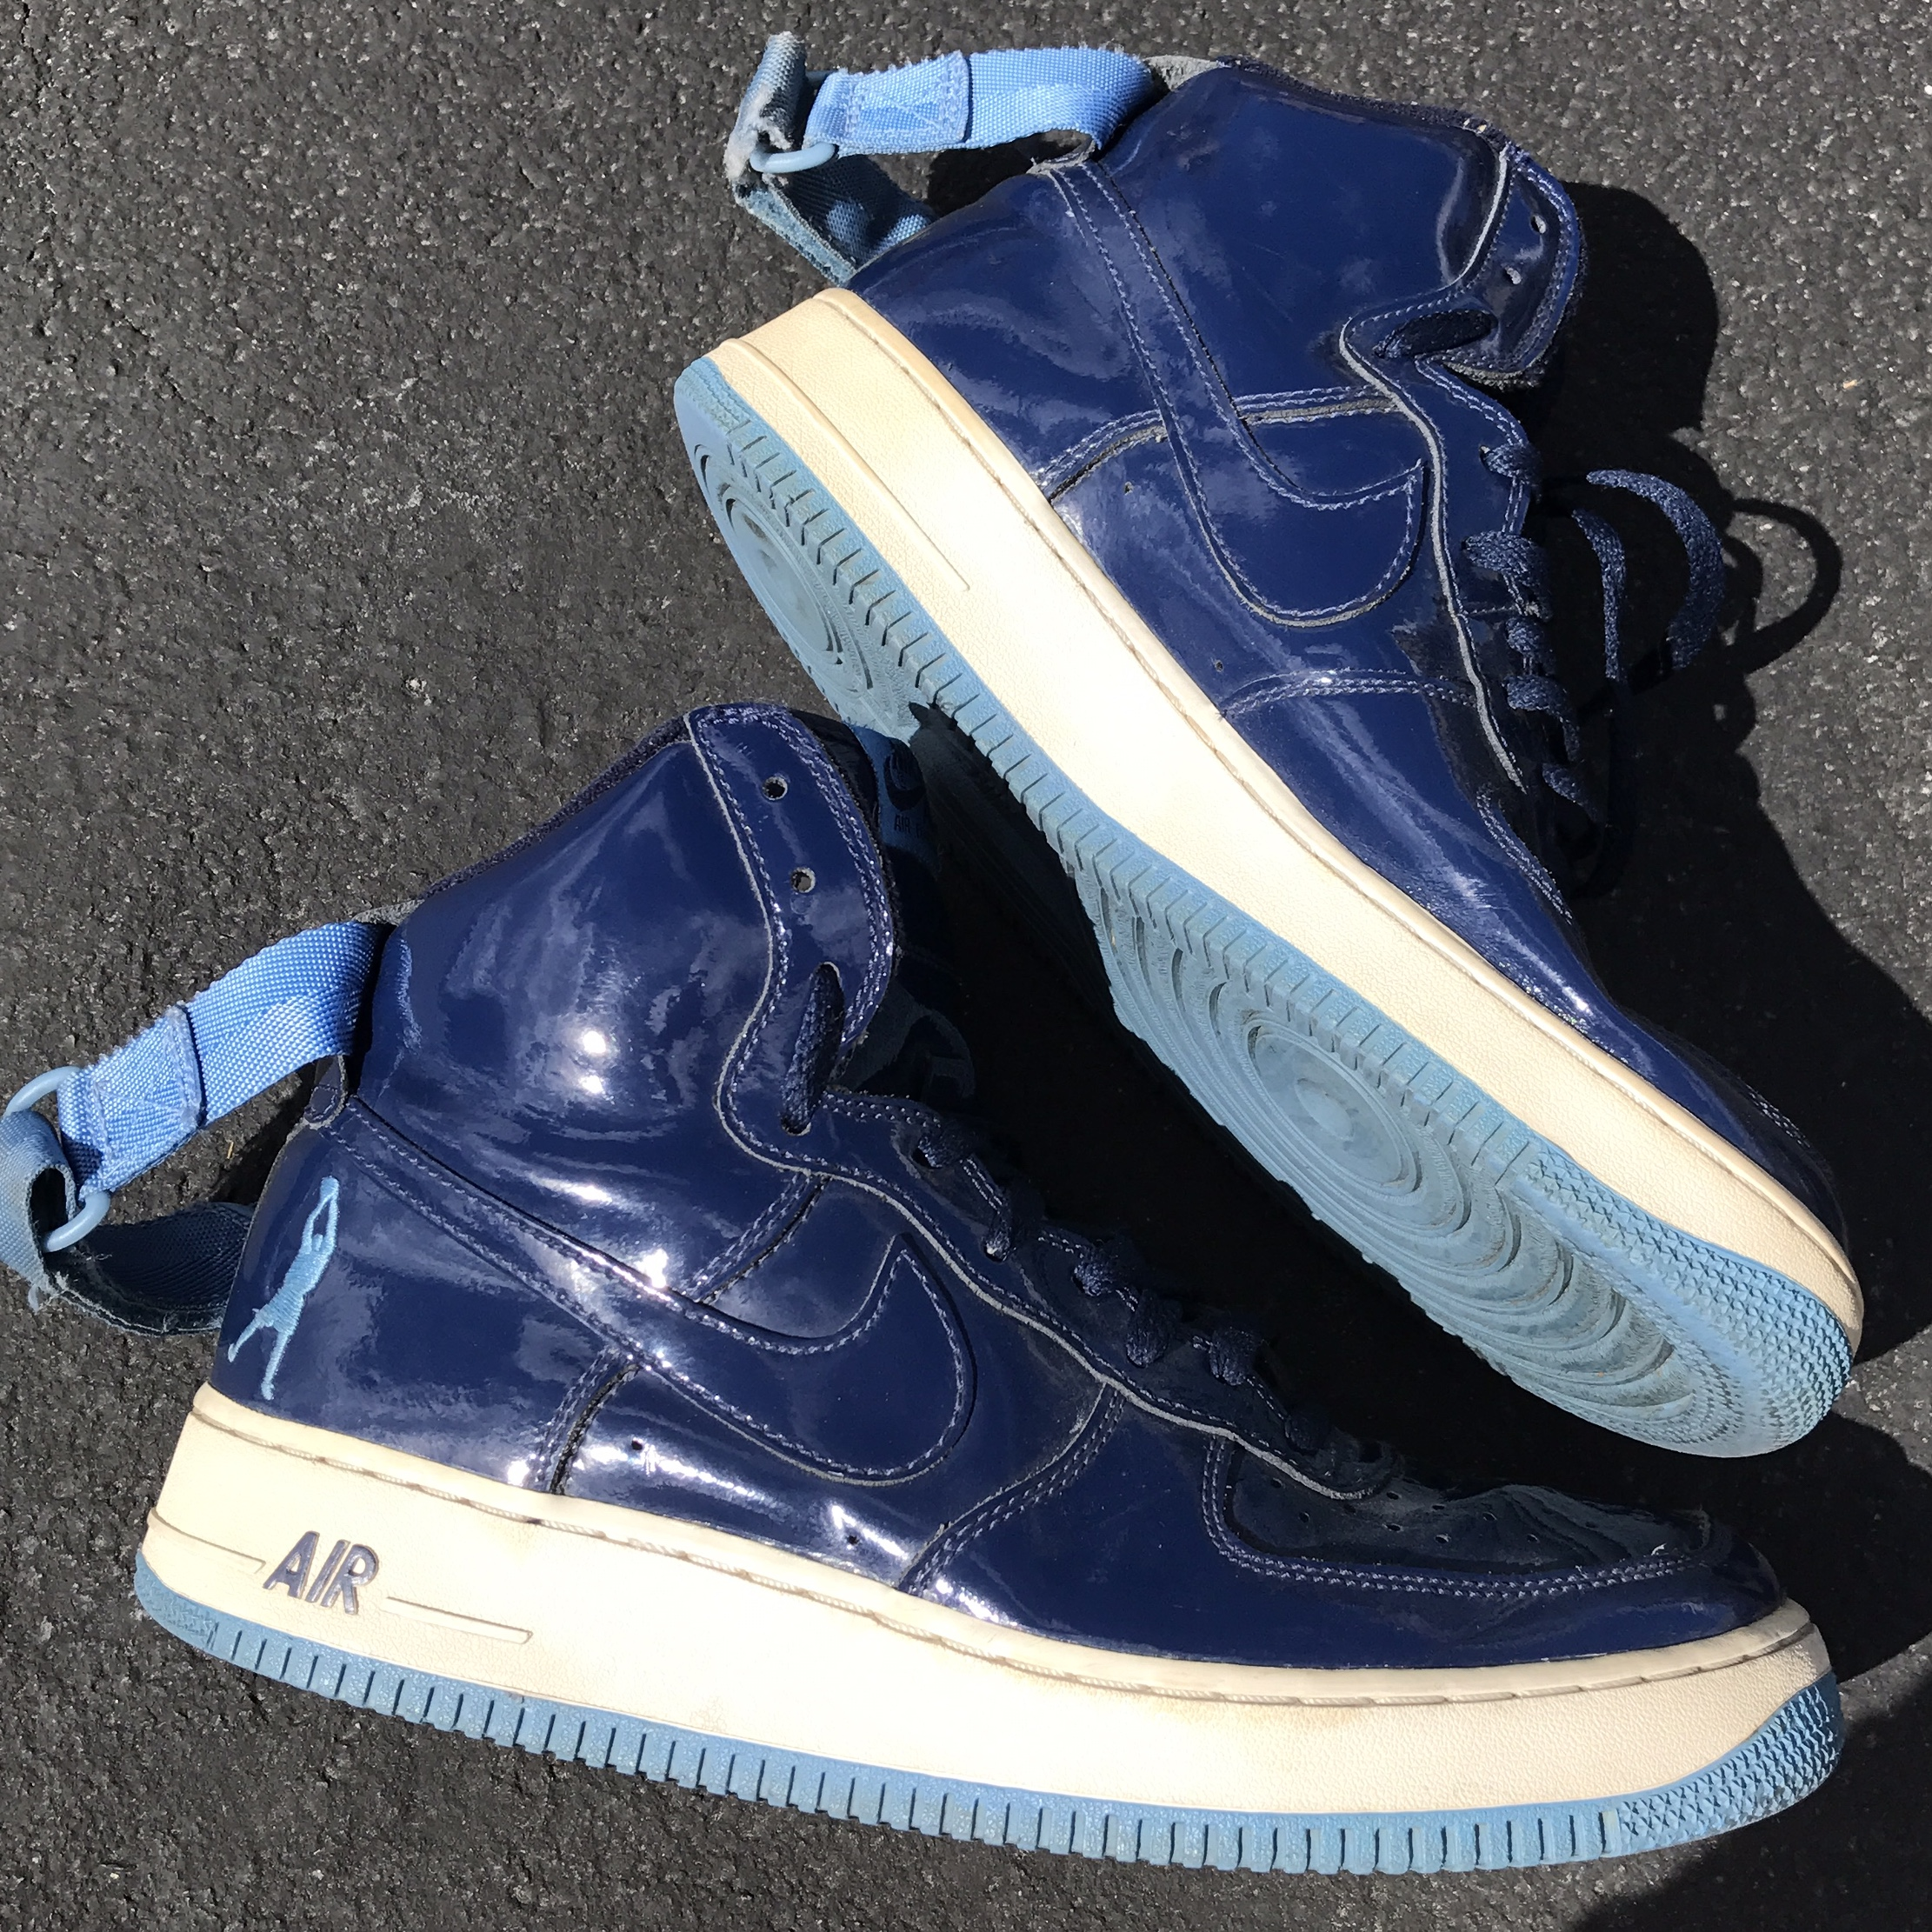 newest d4545 07ffc blue and white nike air force 1 high tops. size 9... - Depop